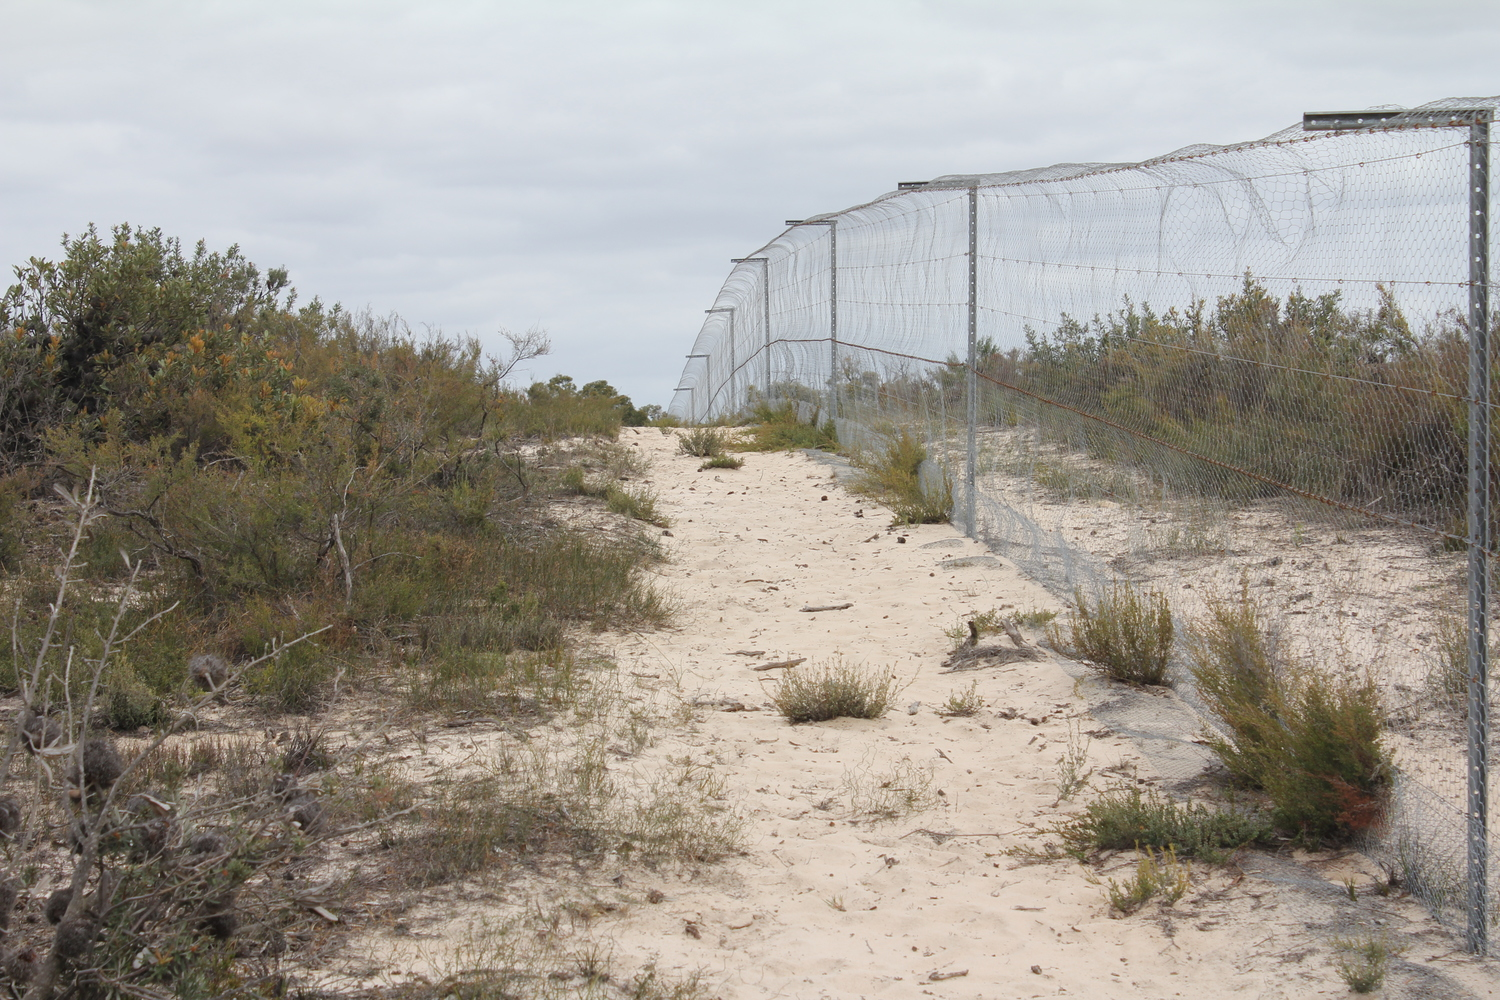 Little Desert's predator-proof fence